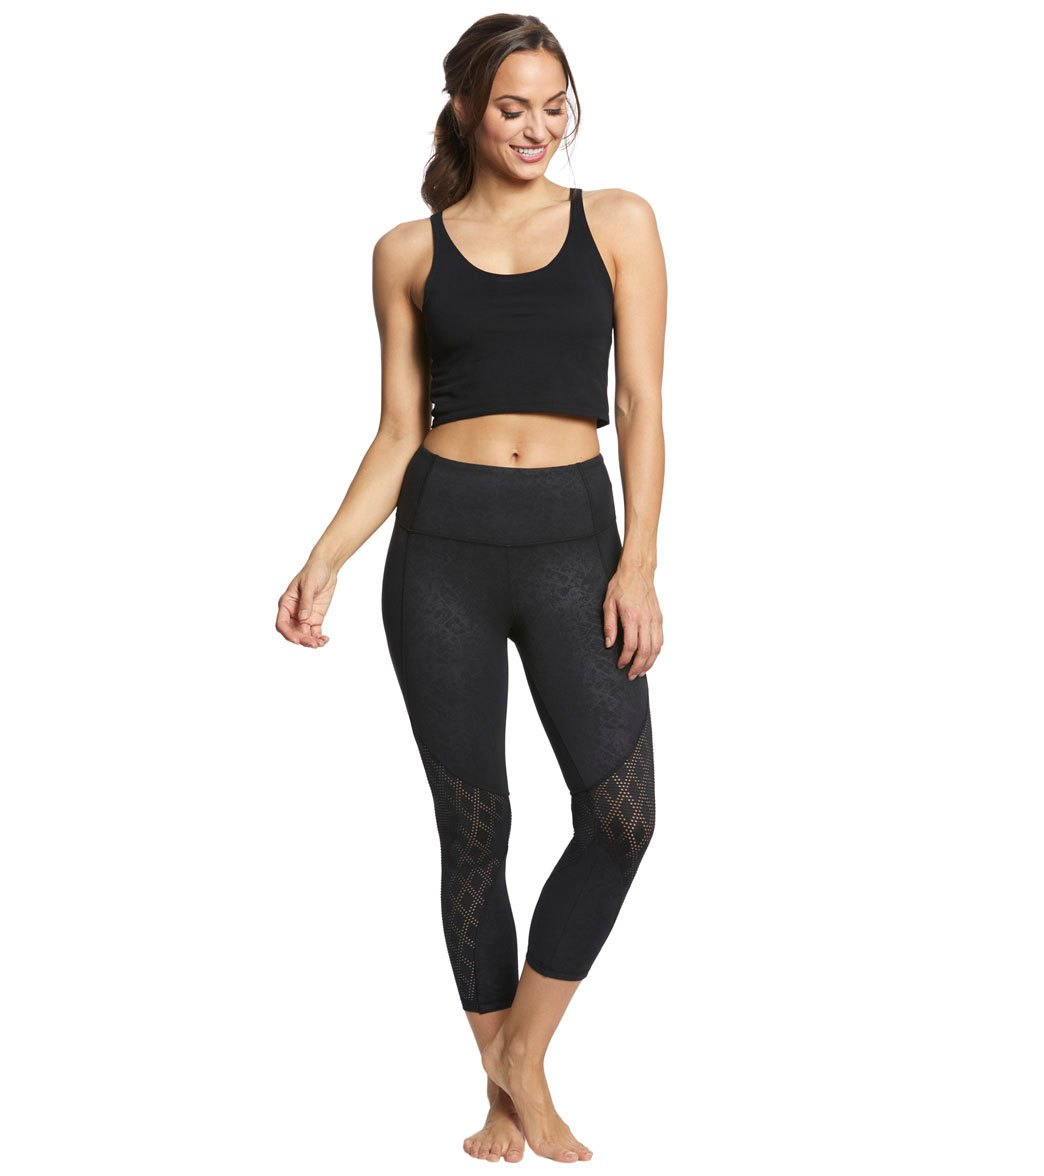 91d2958b20b4fc Balance Collection Ella Yoga Capris at YogaOutlet.com - Free Shipping